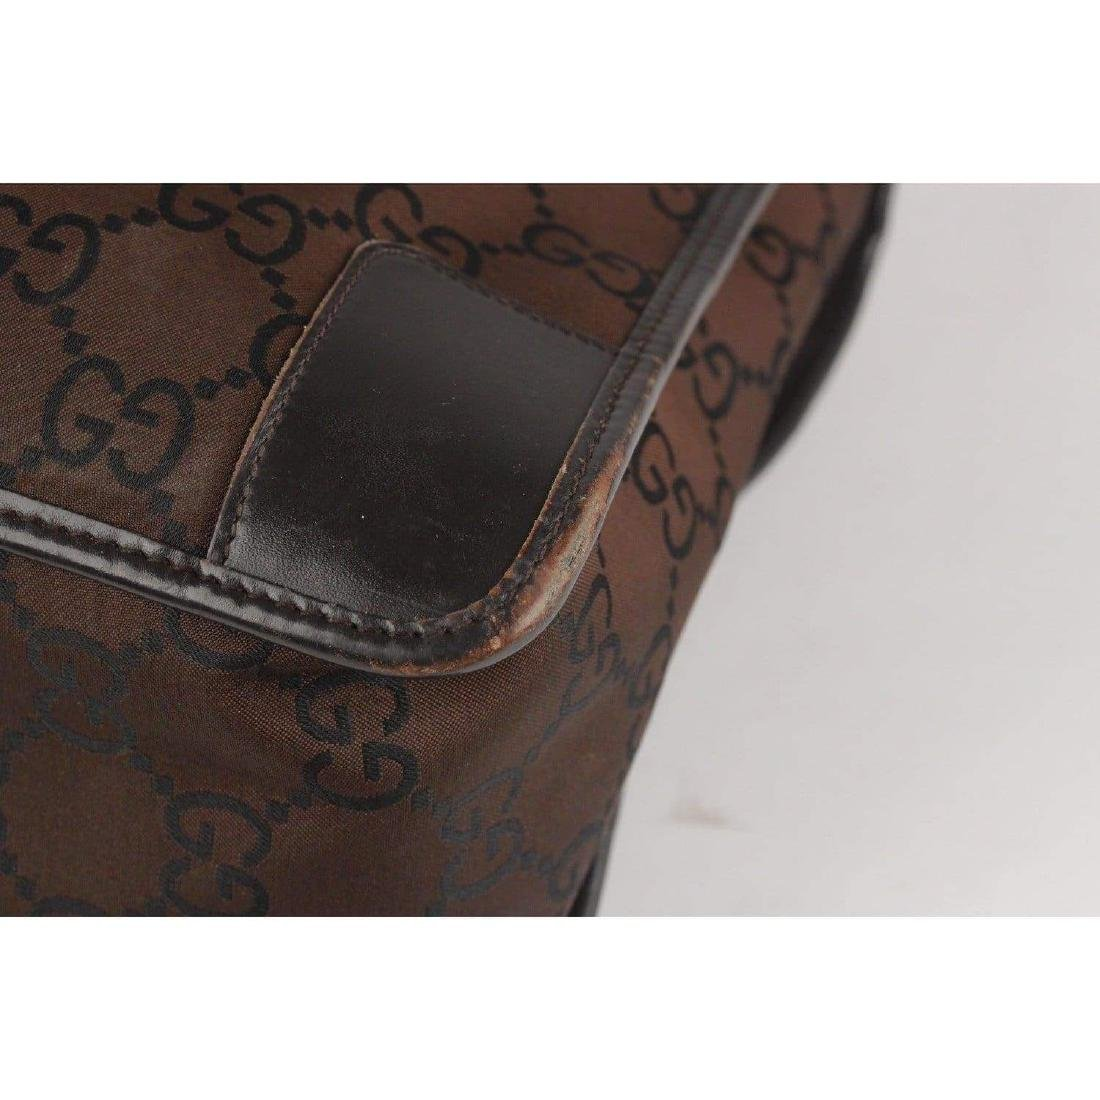 Gucci Monogram Canvas Satchel Bag - 6